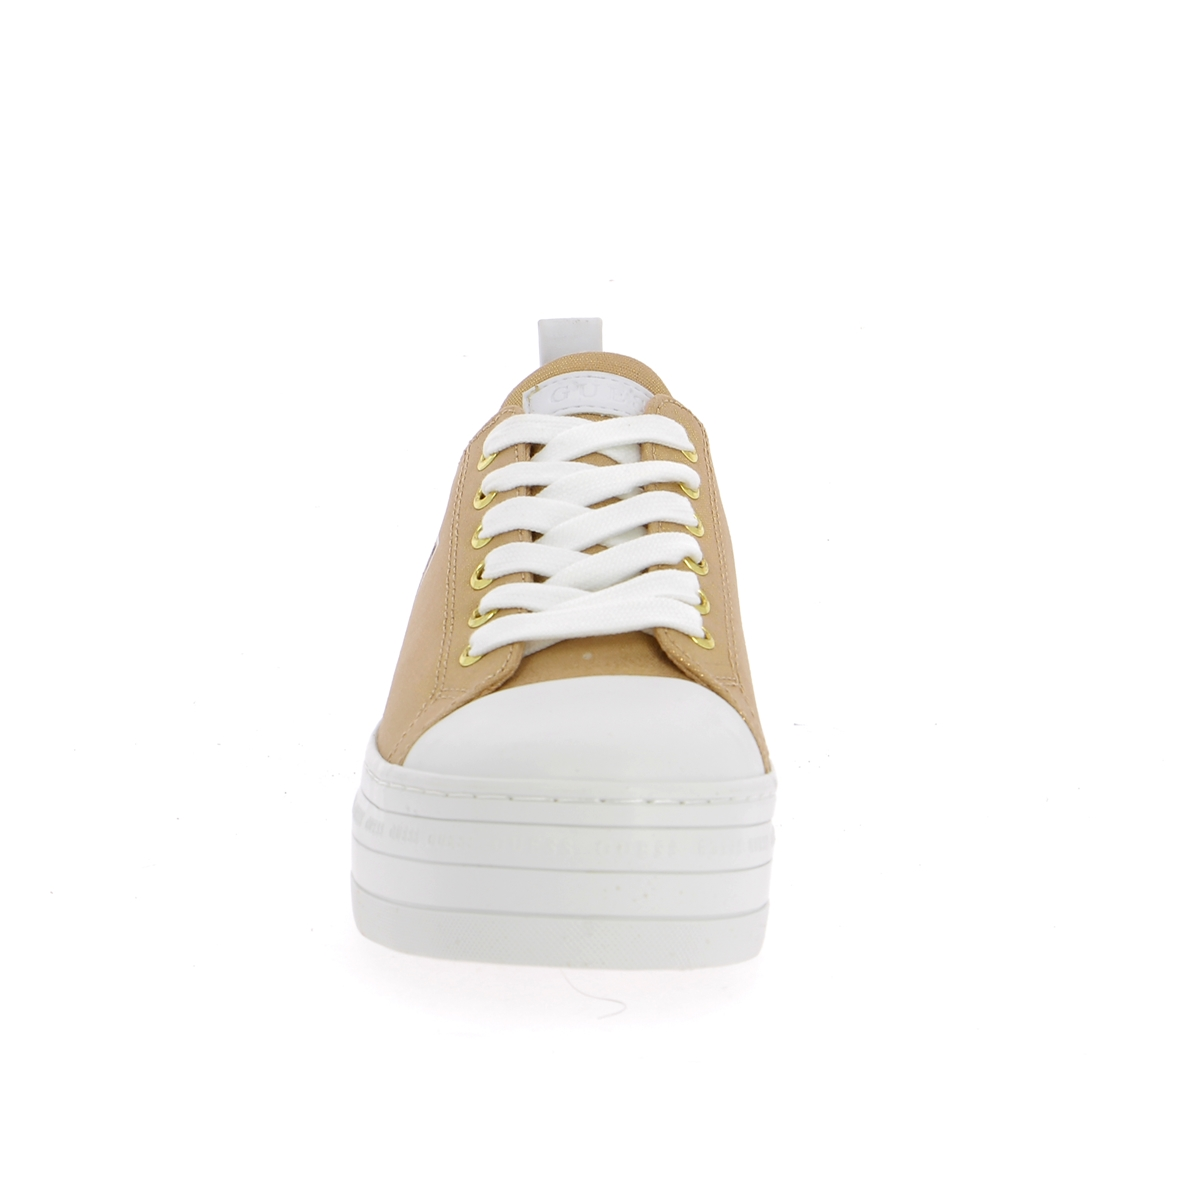 Guess Basket or